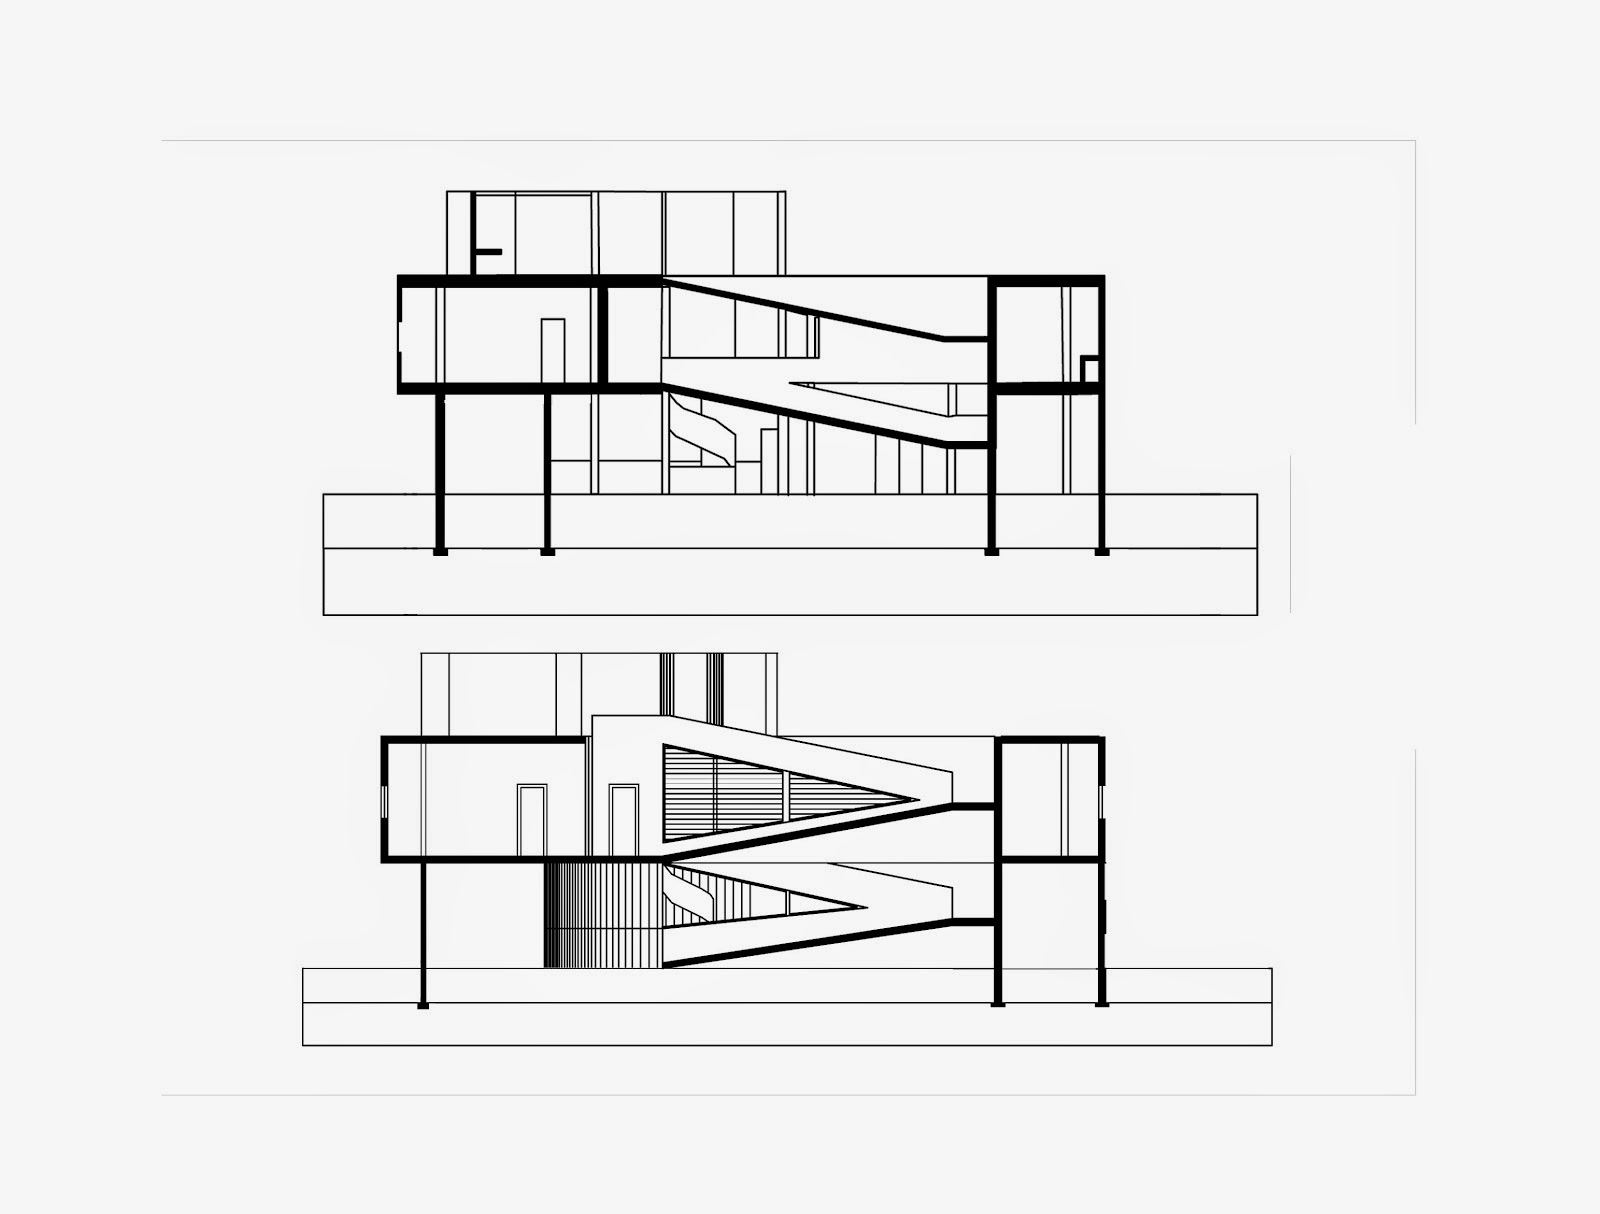 Section Elevation Plan View : Plans and sections villa savoye